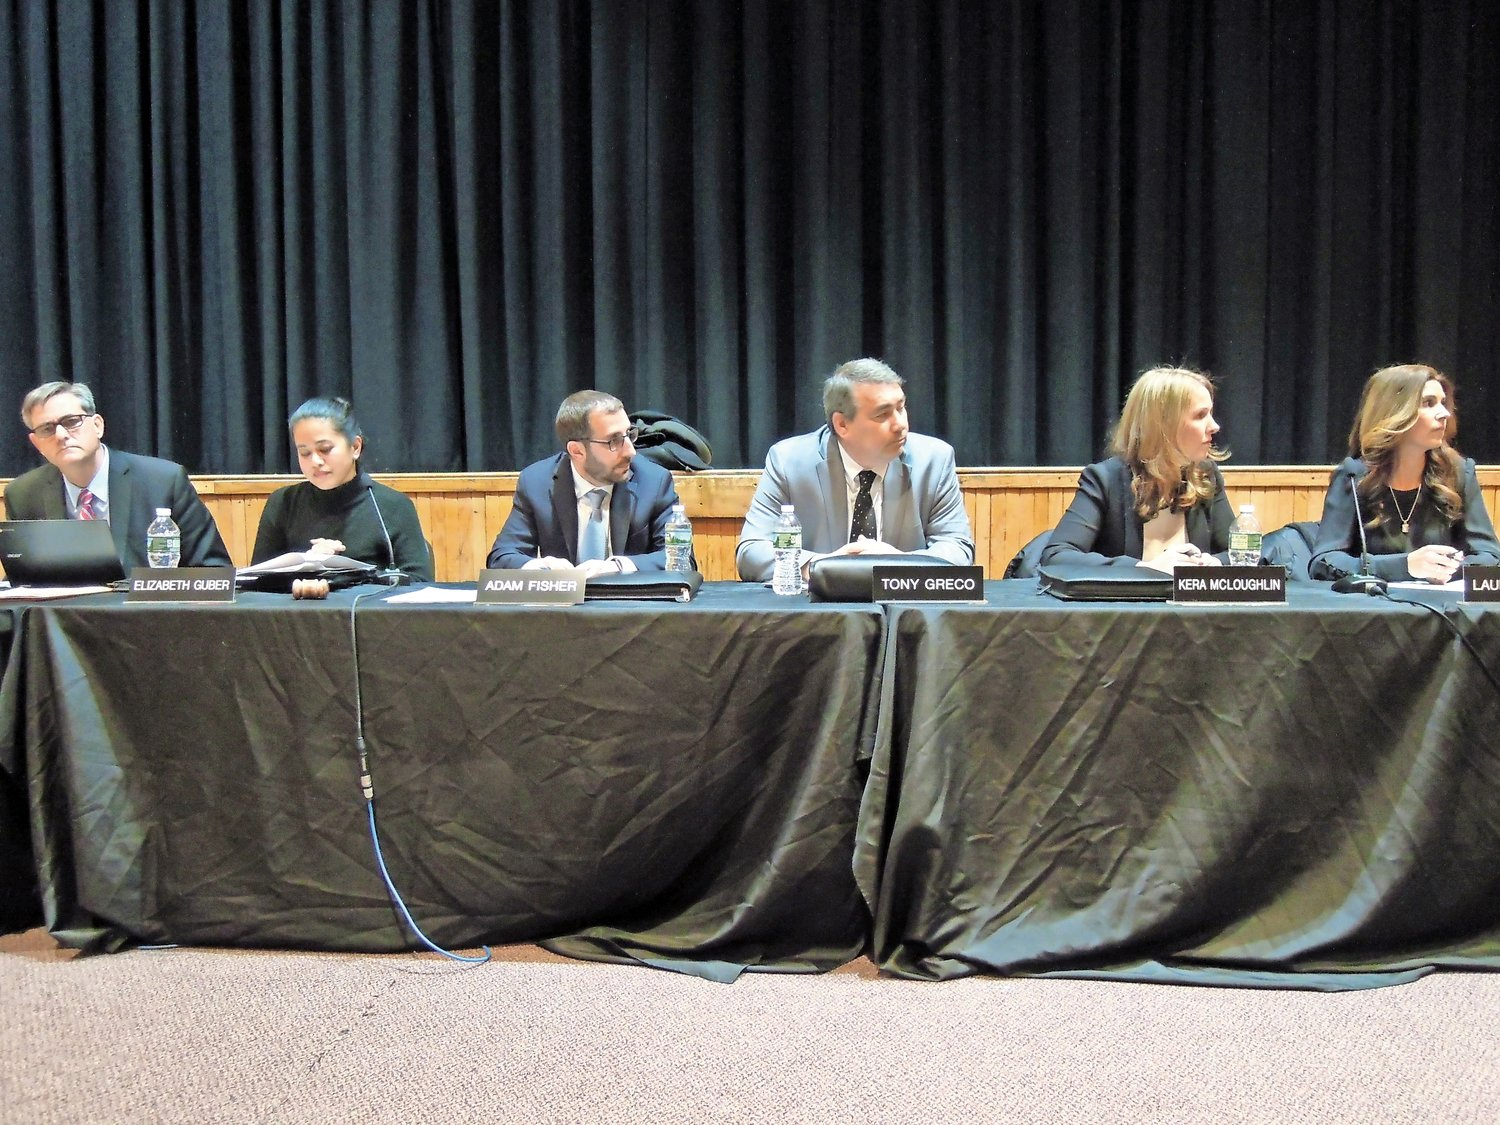 From left, district Superintendent John McNamara, Guber, Vice President Adam Fisher, and trustees Tony Greco, Kera McLoughlin and Laura Reich listen to public comments on the transfer at the Dec. 12 board meeting.